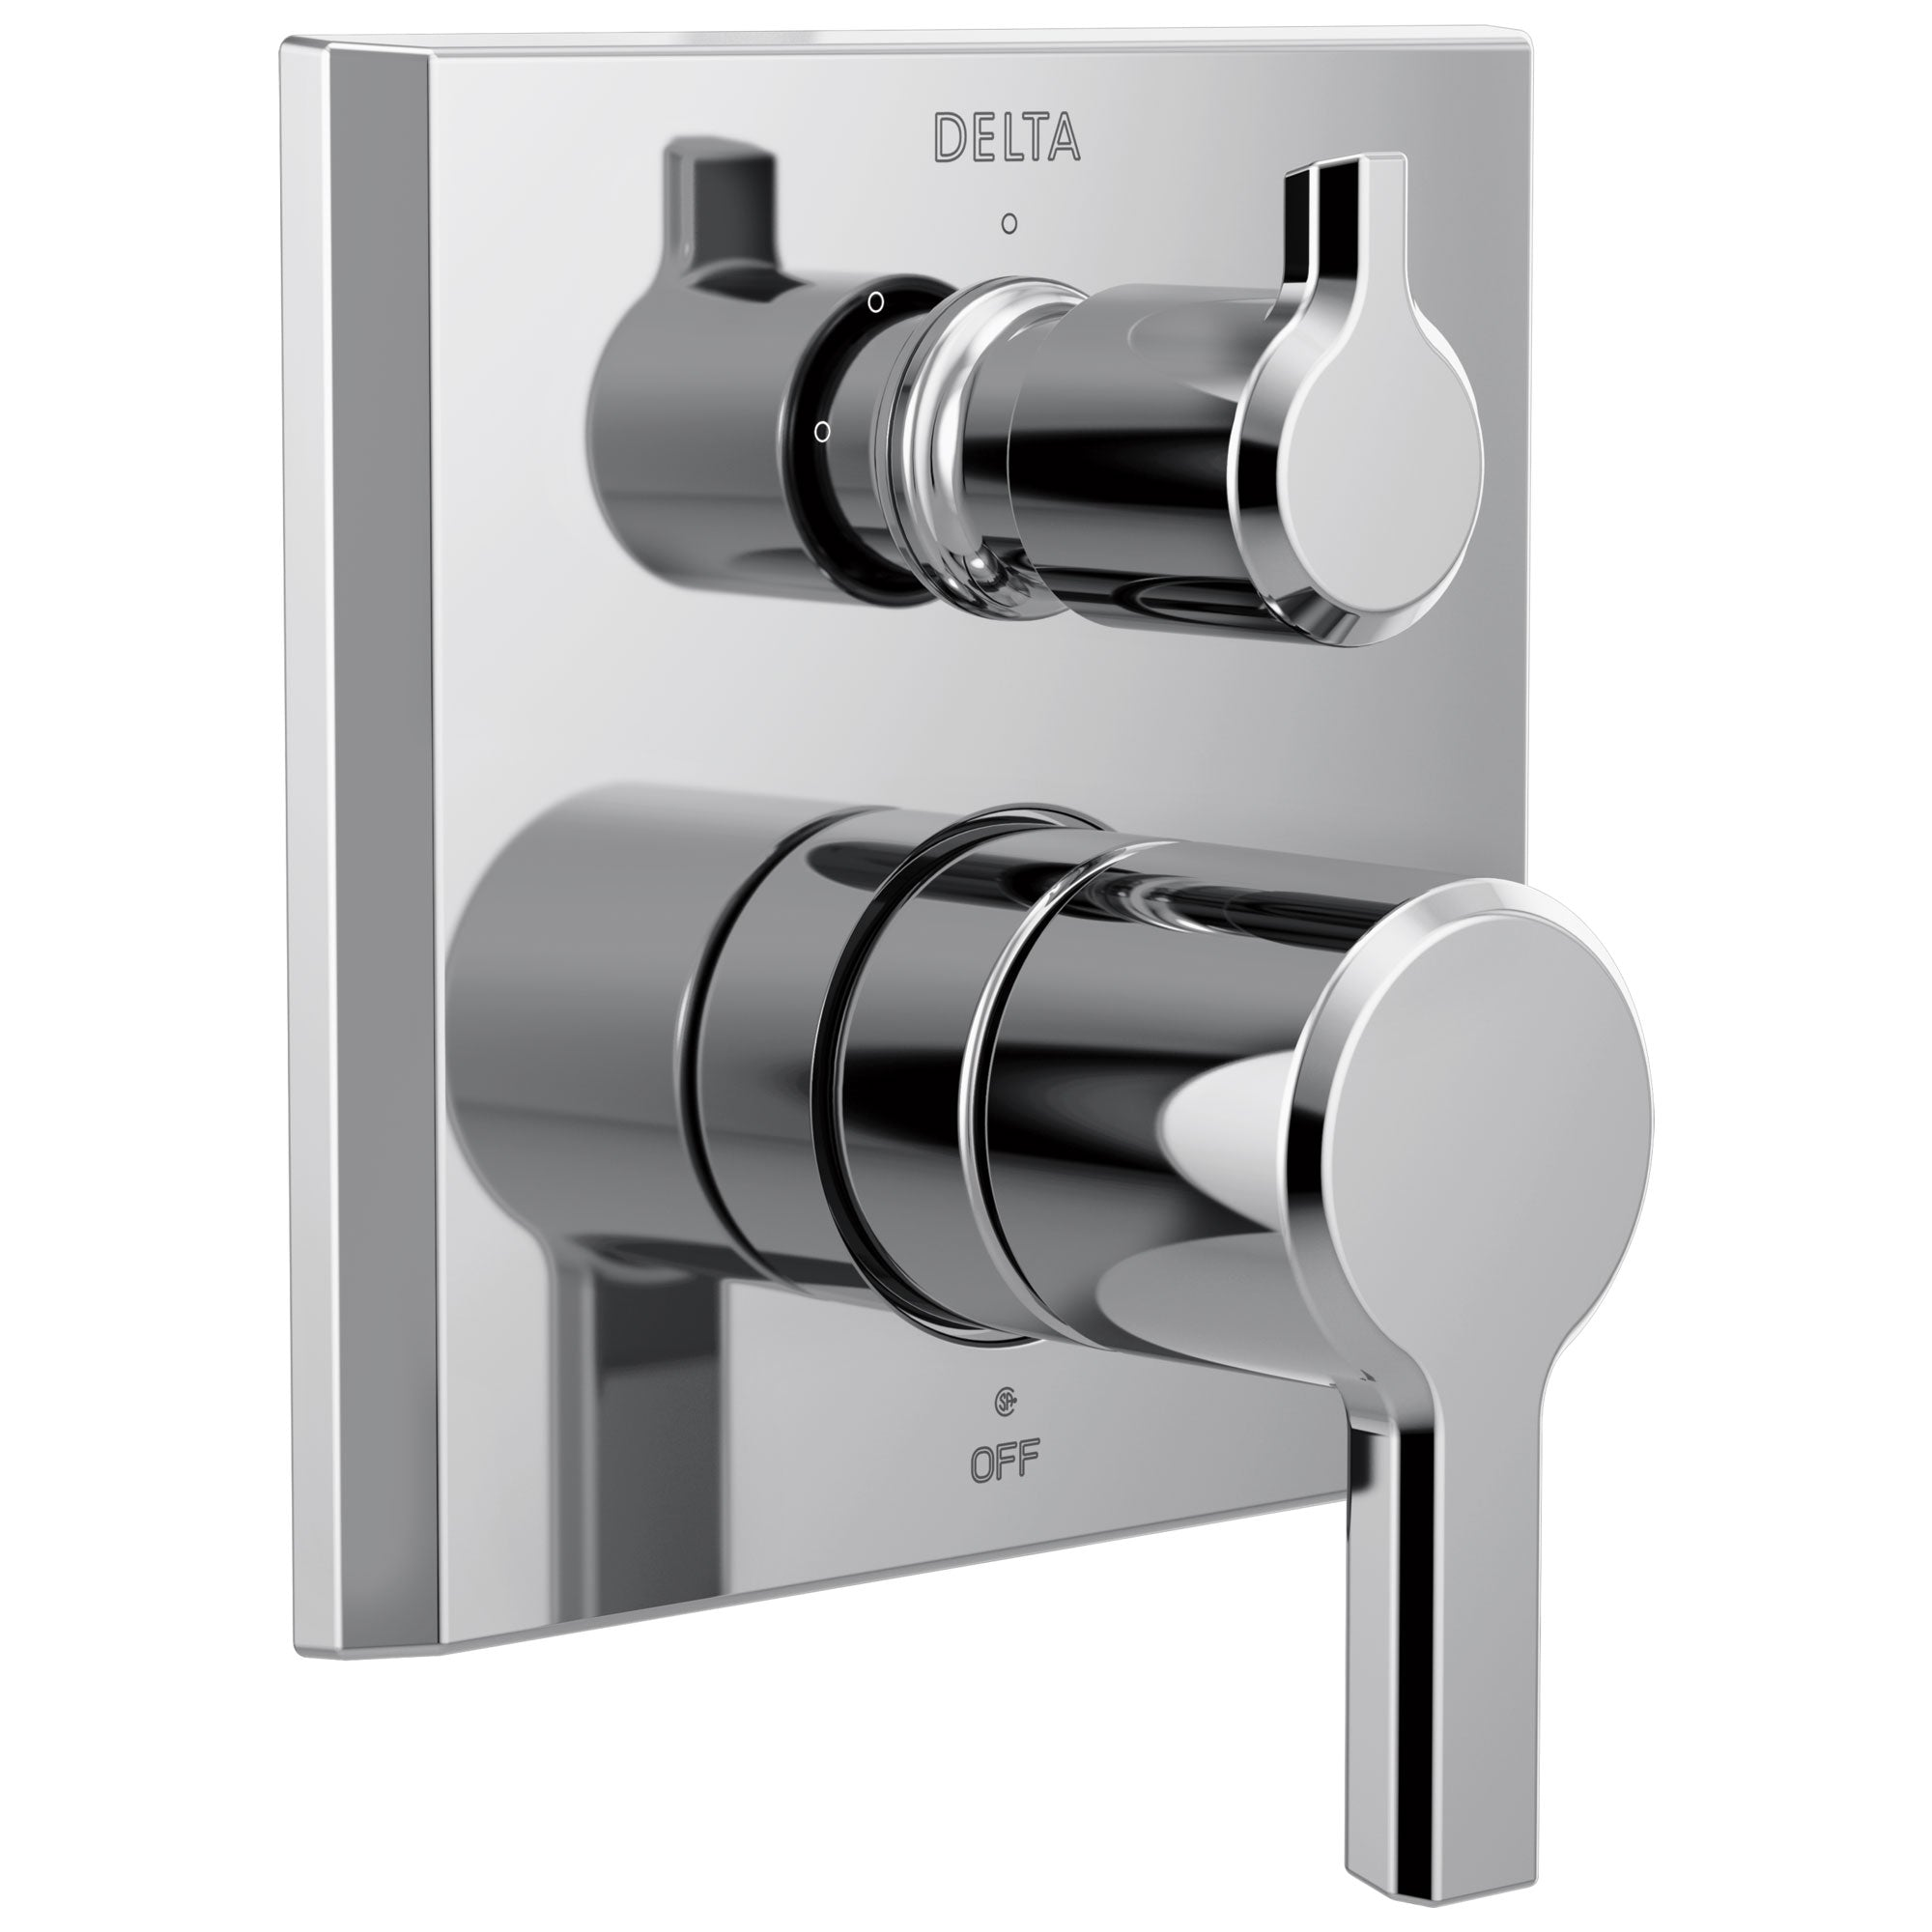 Delta Pivotal Chrome Finish 14 Series Modern Shower Faucet System Control with 3-Setting Integrated Diverter Includes Valve and Handles D3762V